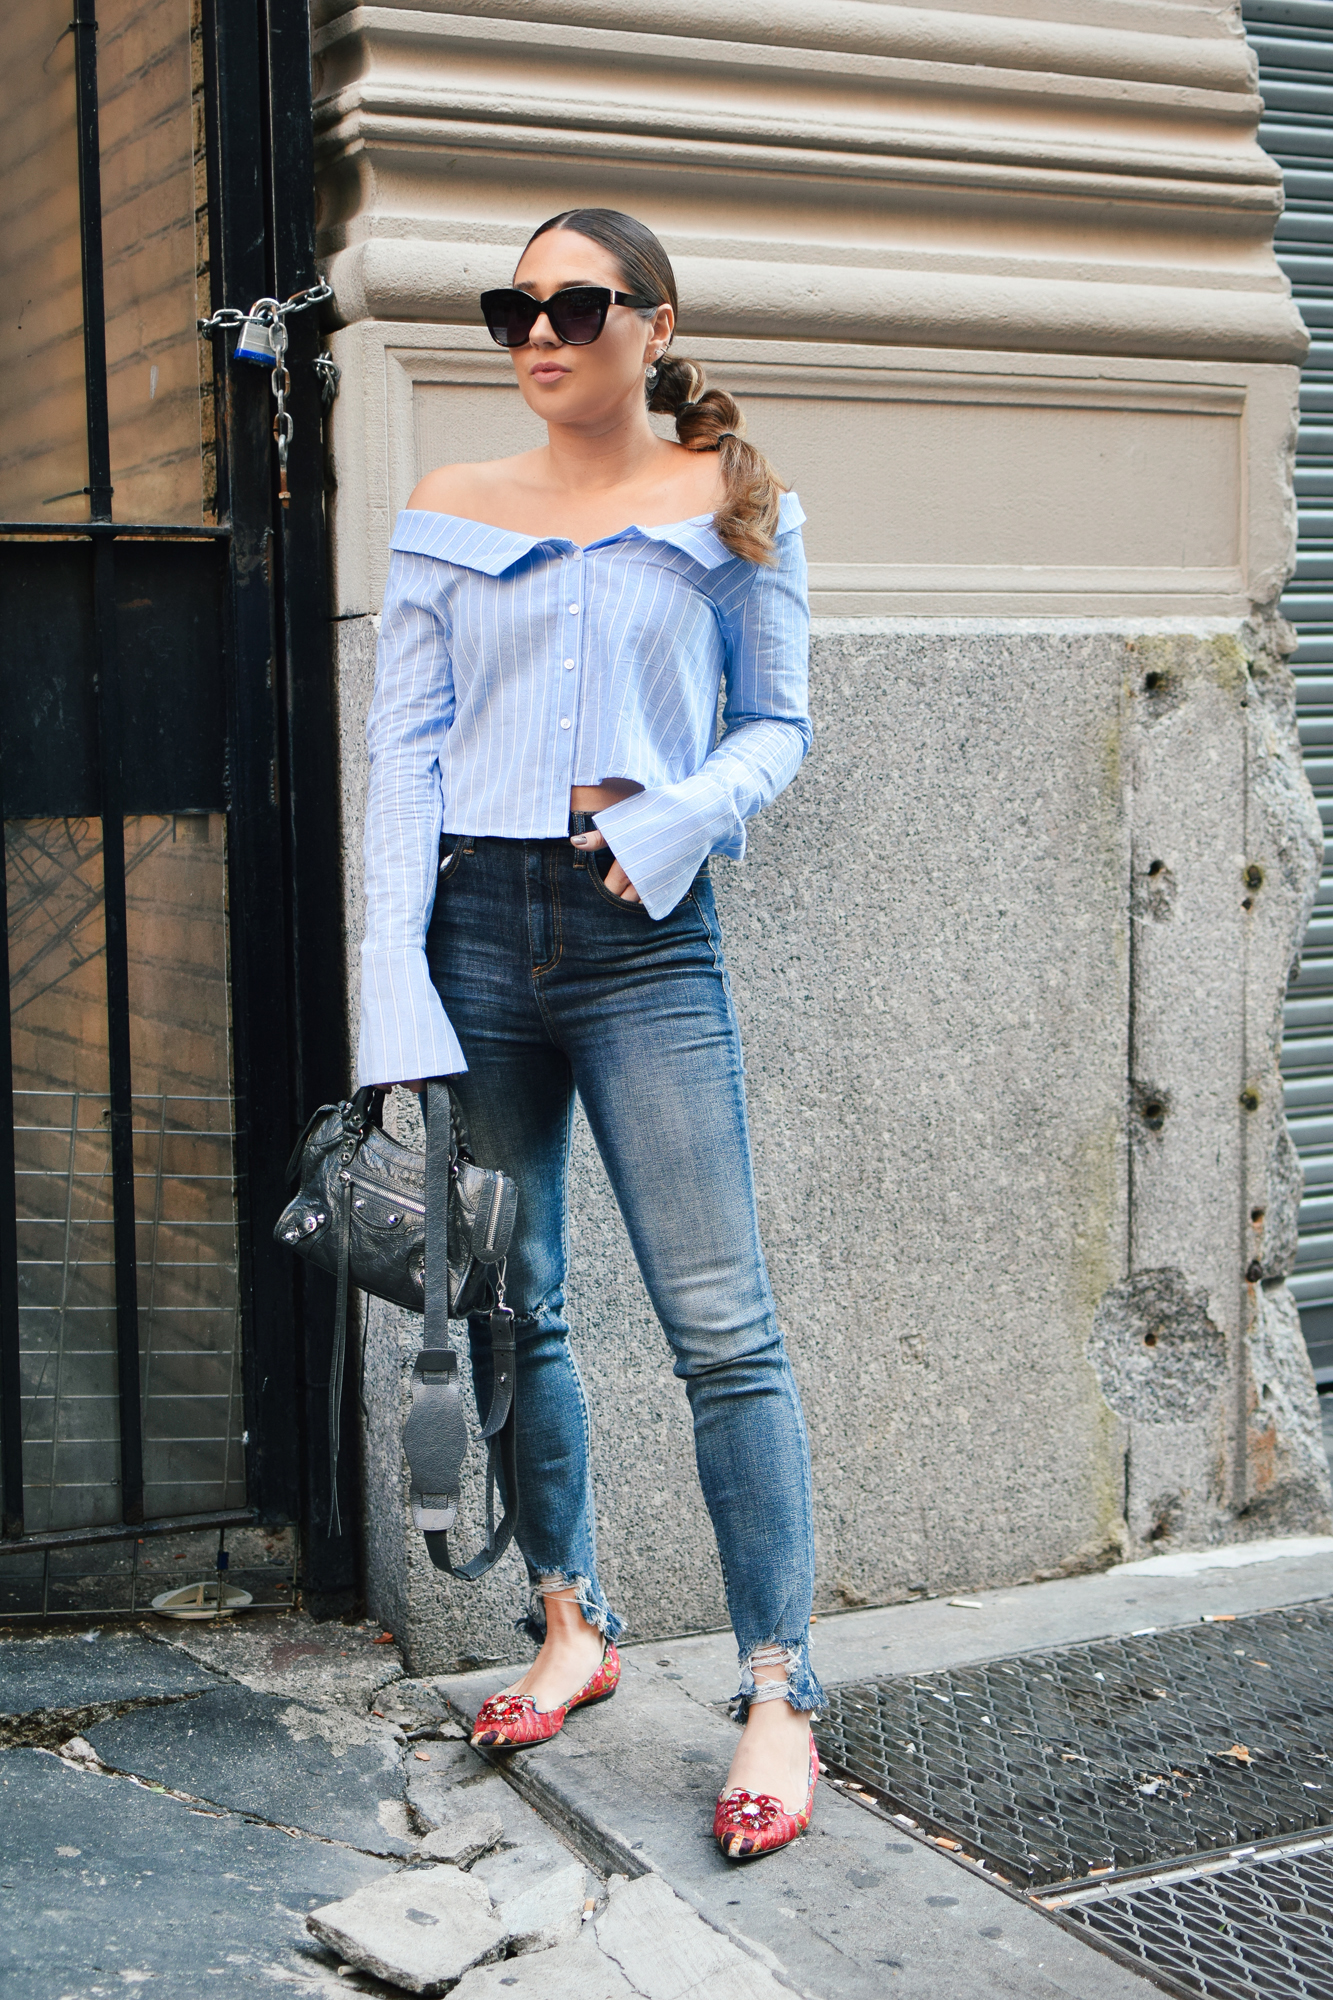 tobi-off-shoulder-striped-top-jeans-casual-outfit-cool-sunglasses